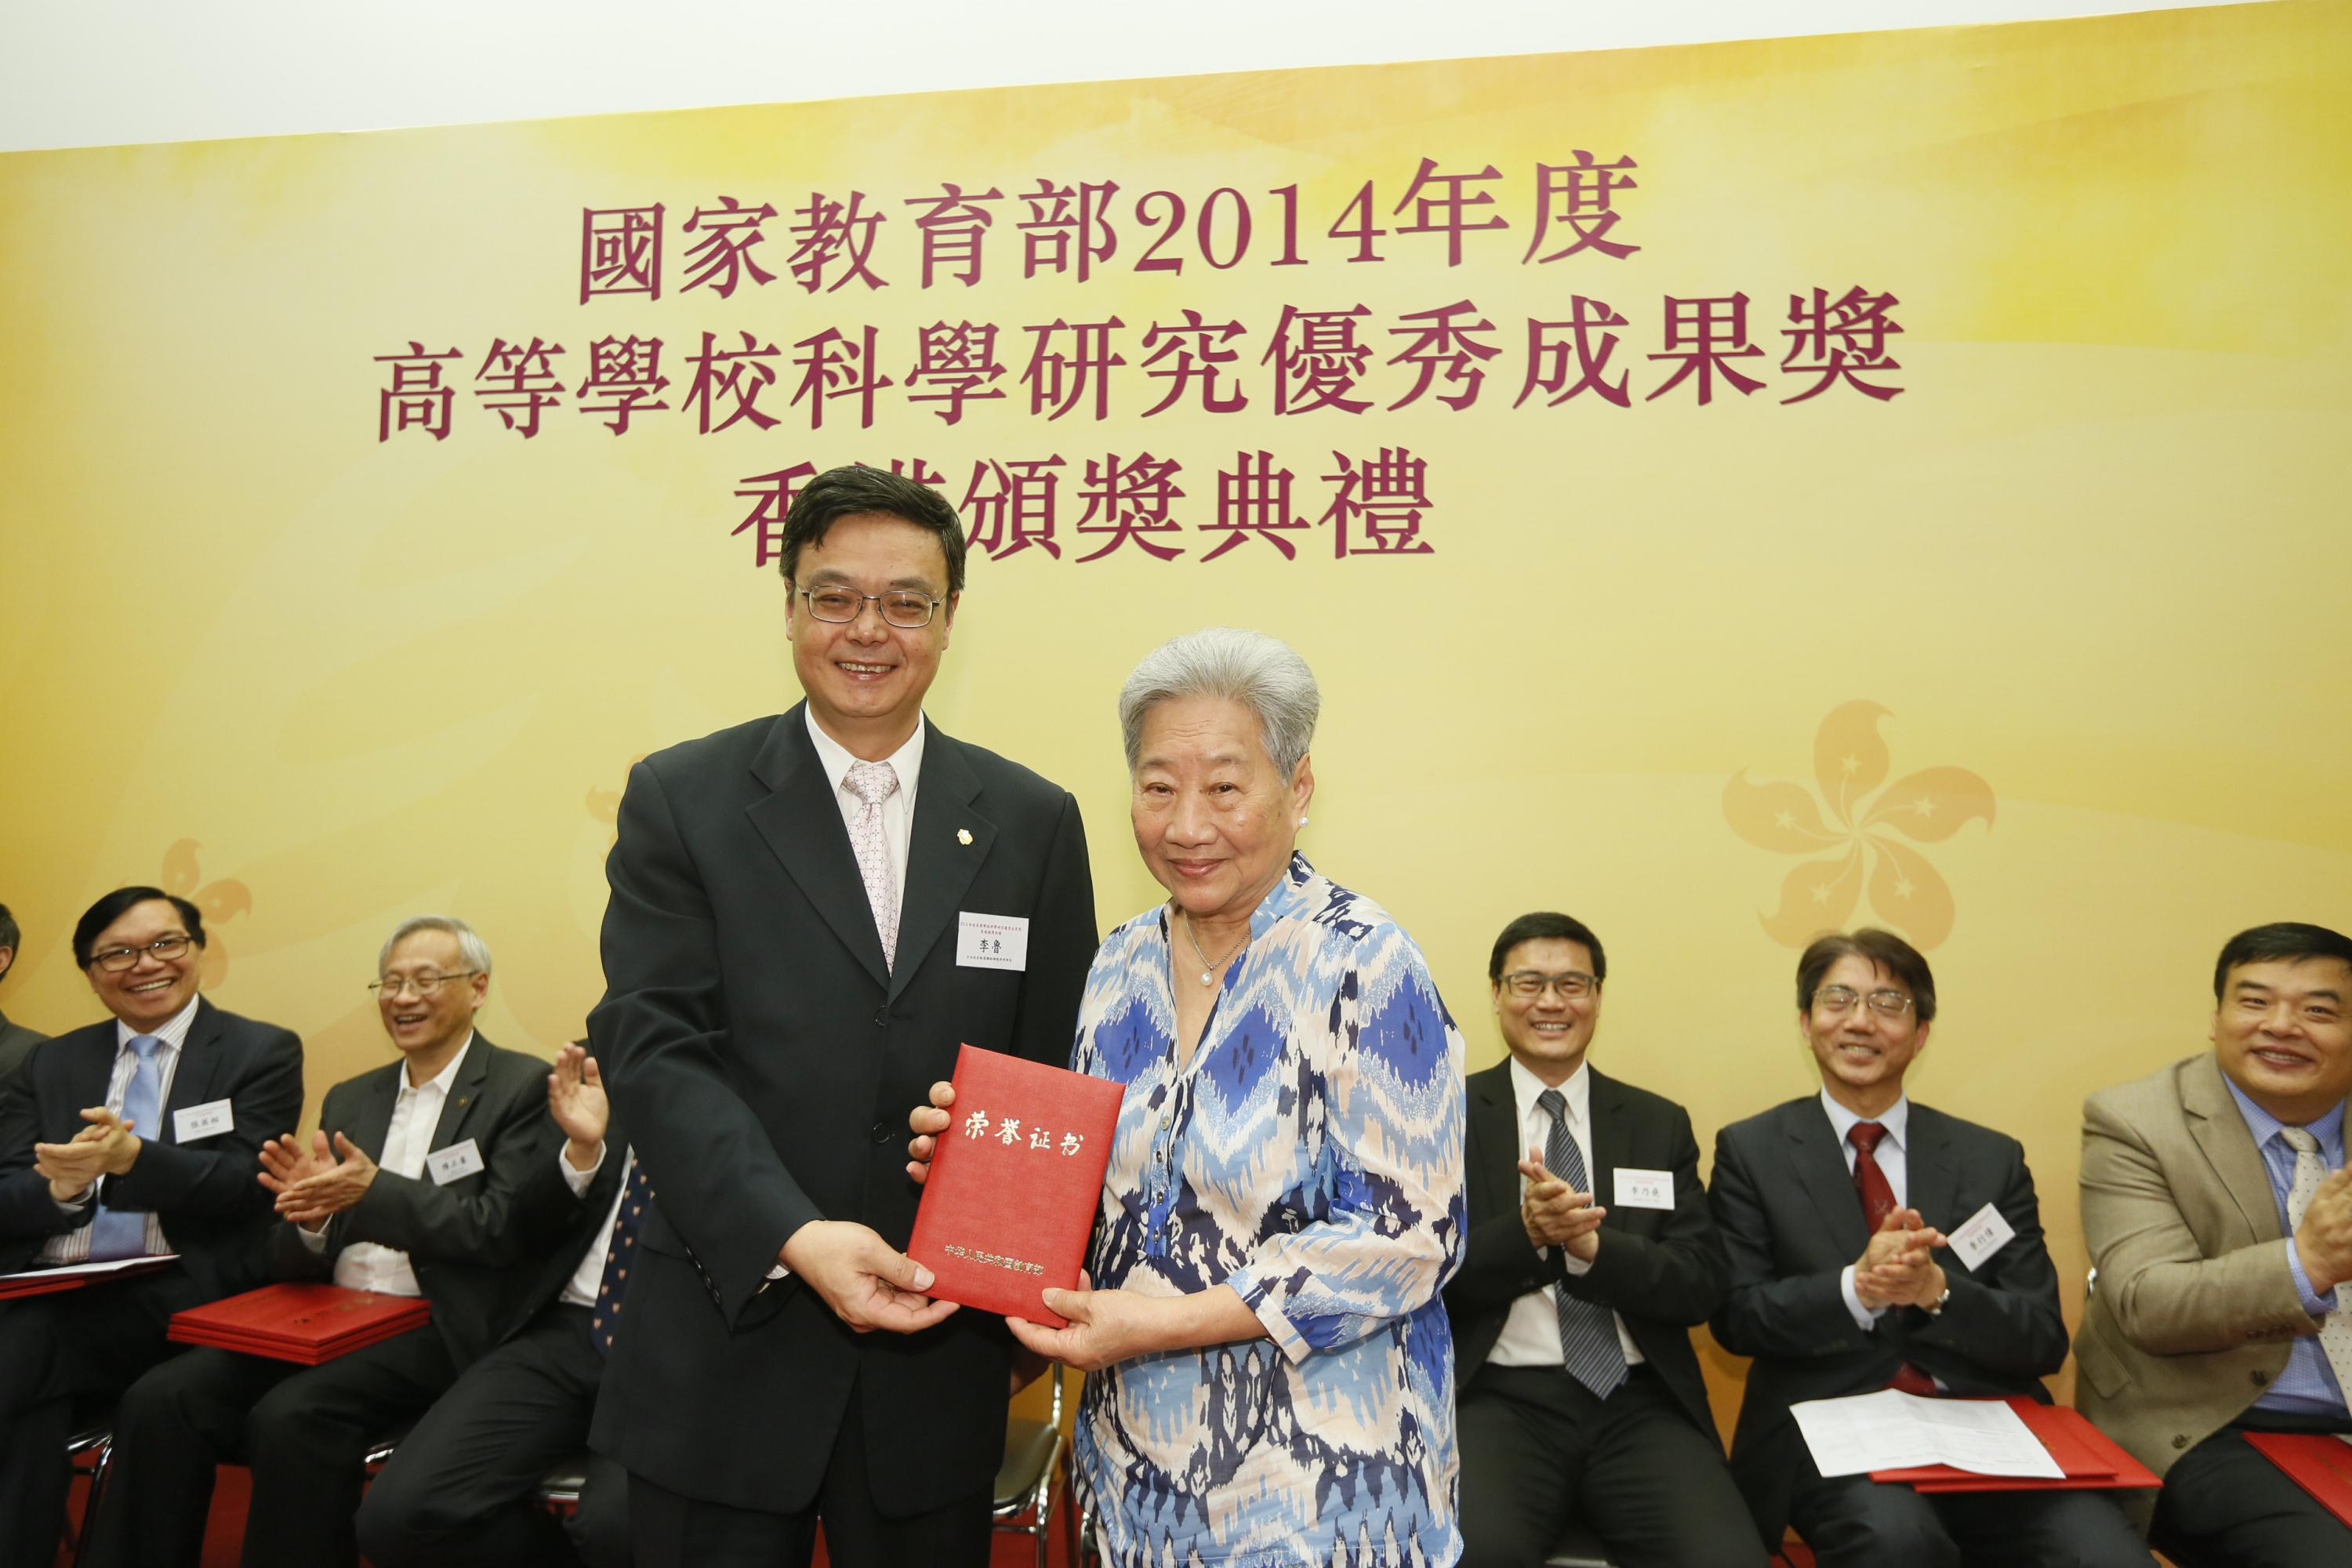 Prof. Tony Mok's mother (right) represents his son to receive the award certificate from Prof. Lu Li.